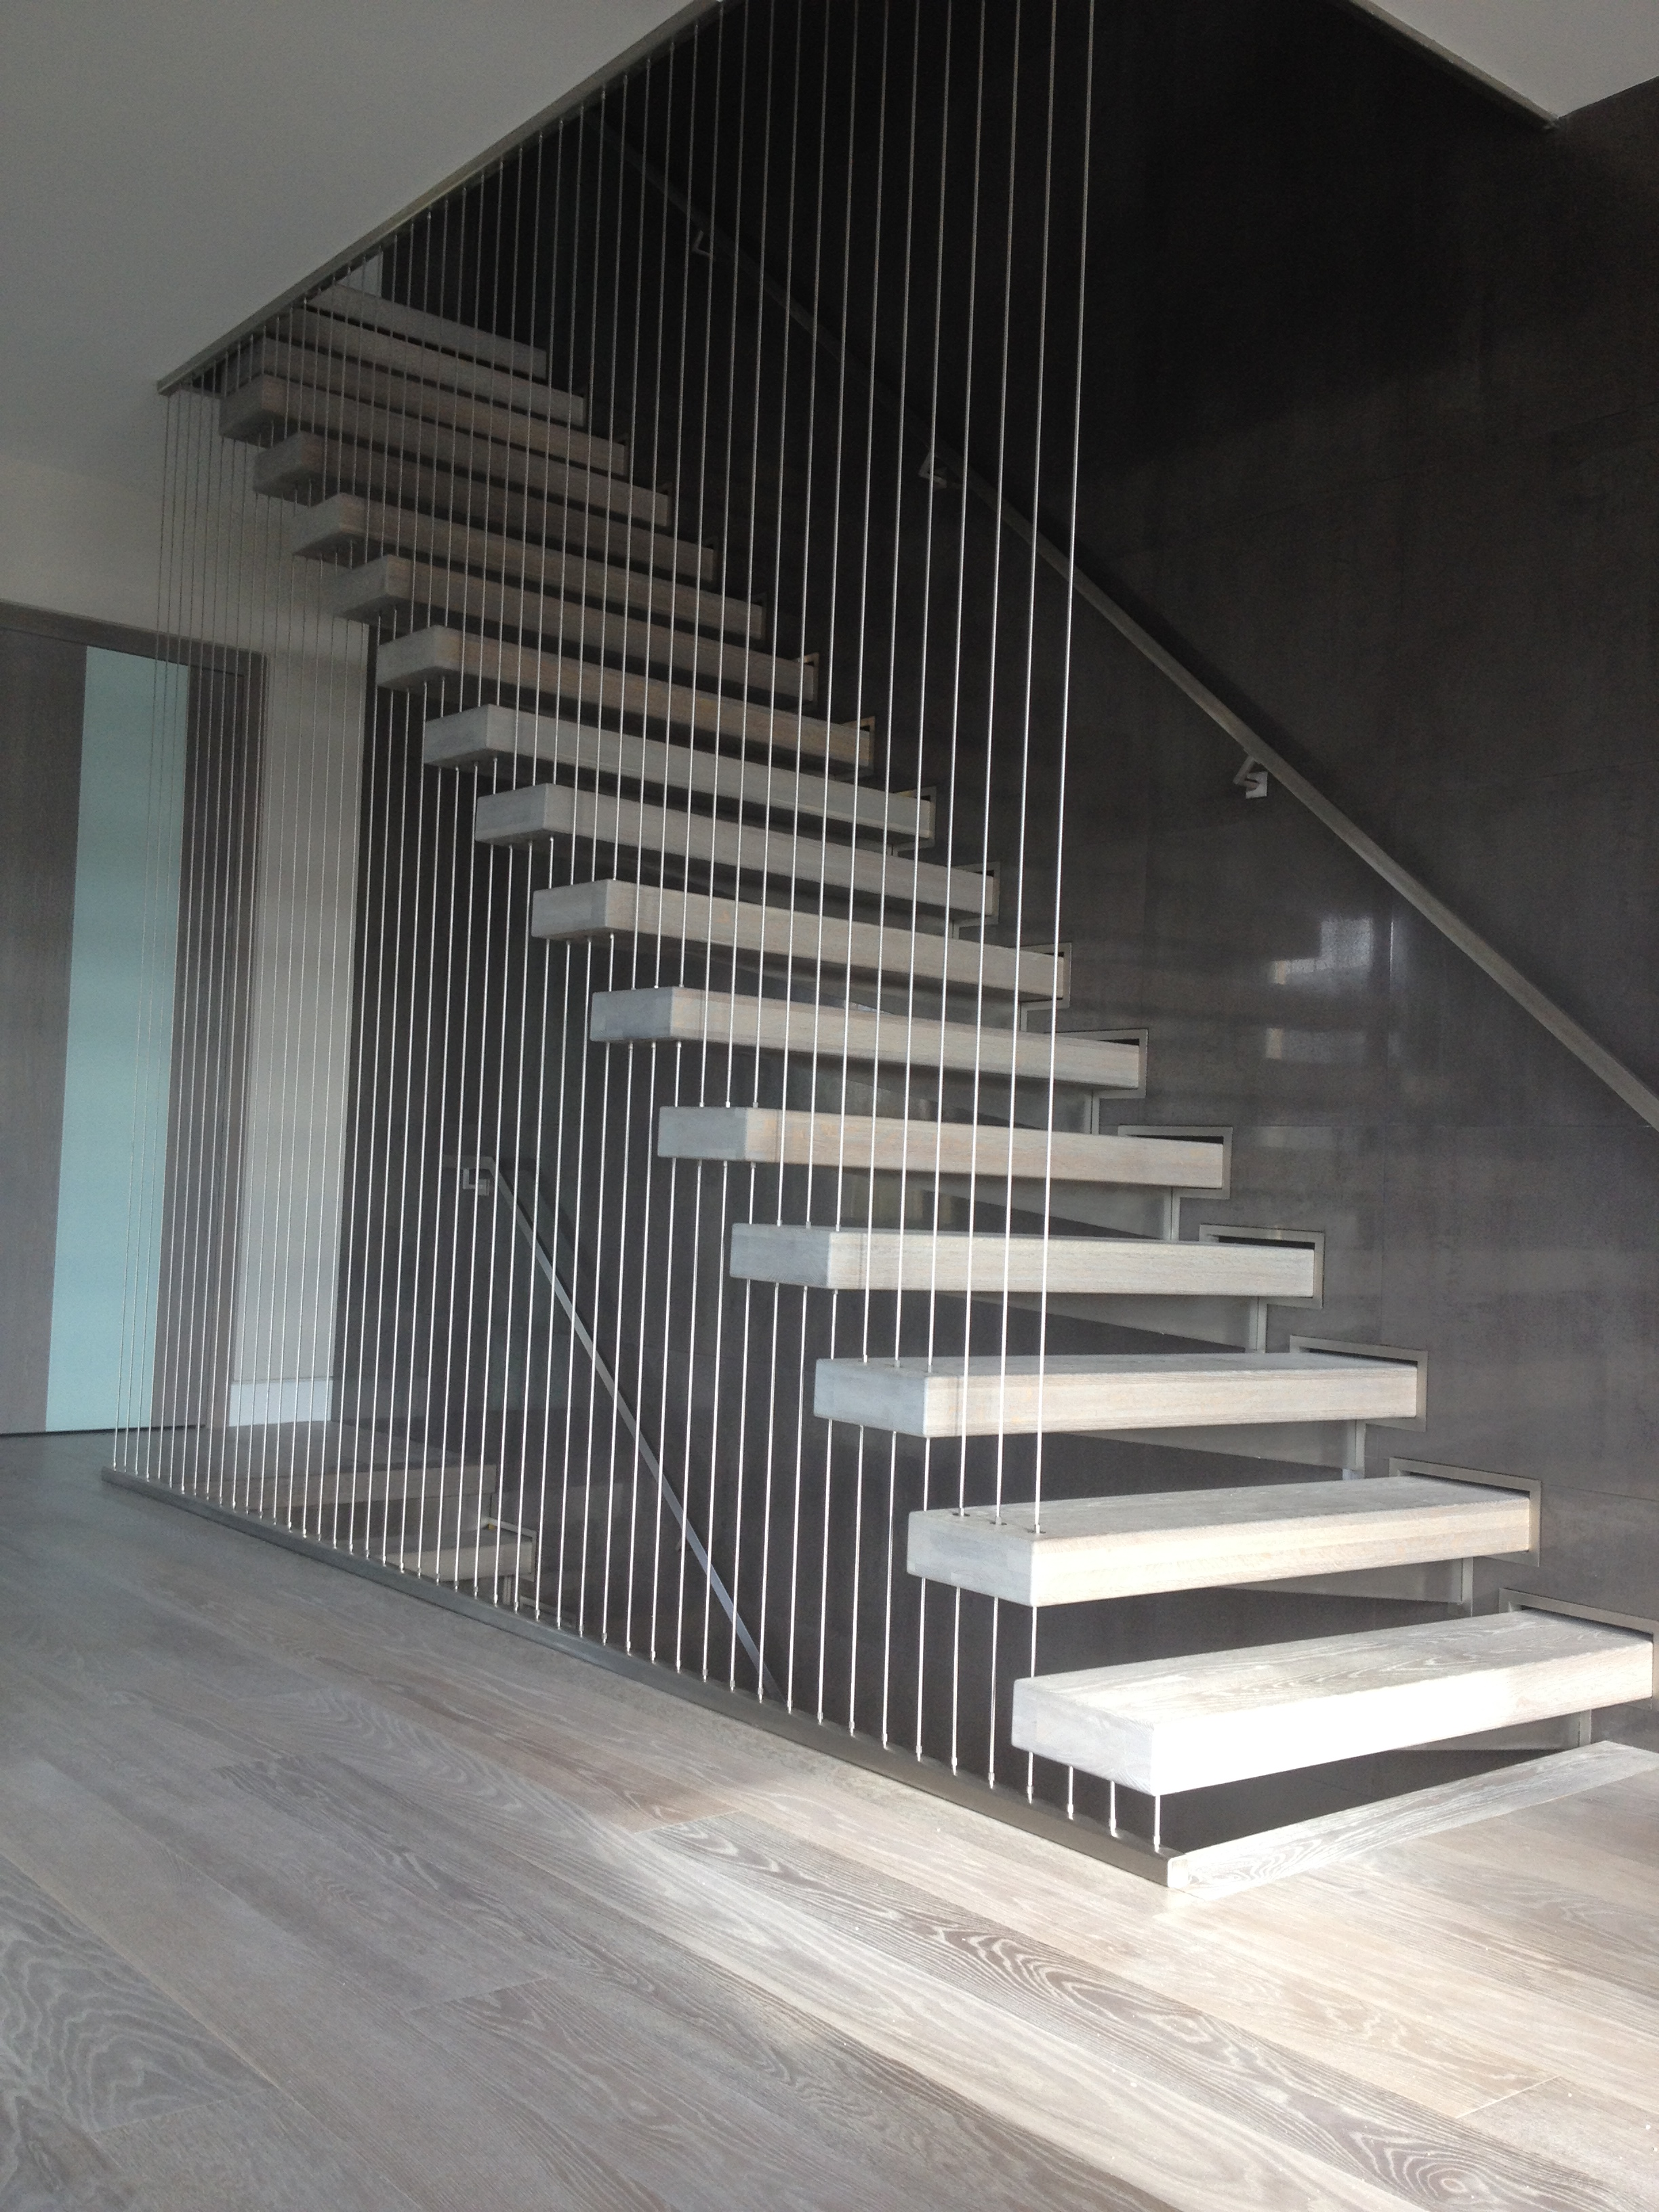 Interior Stairs & Stainless Handrail